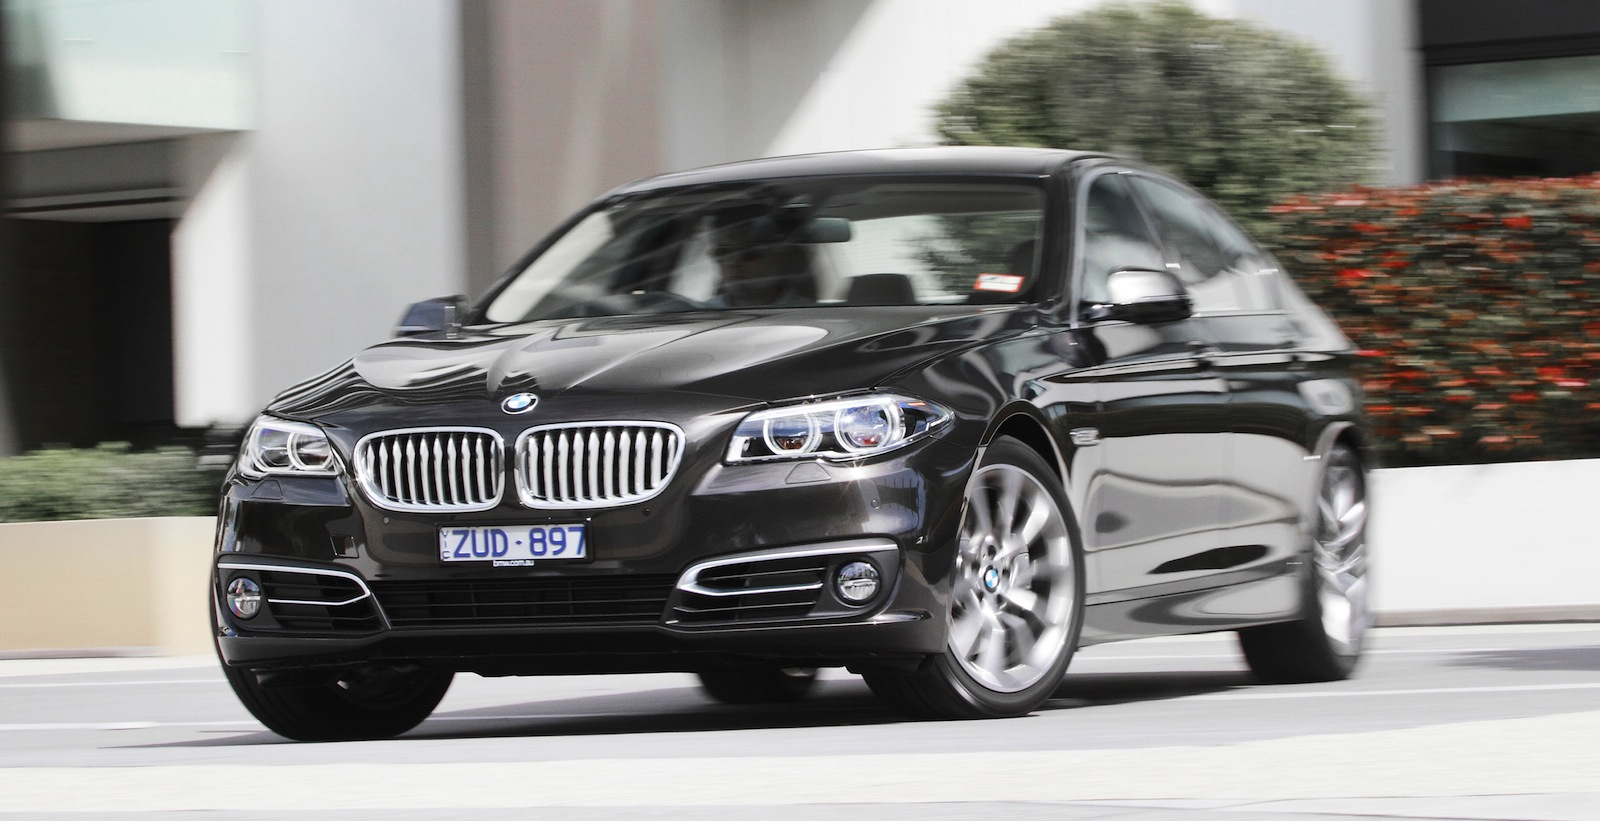 Bmw F10 5 Series Lci Priced From Aud79 900 In Australia